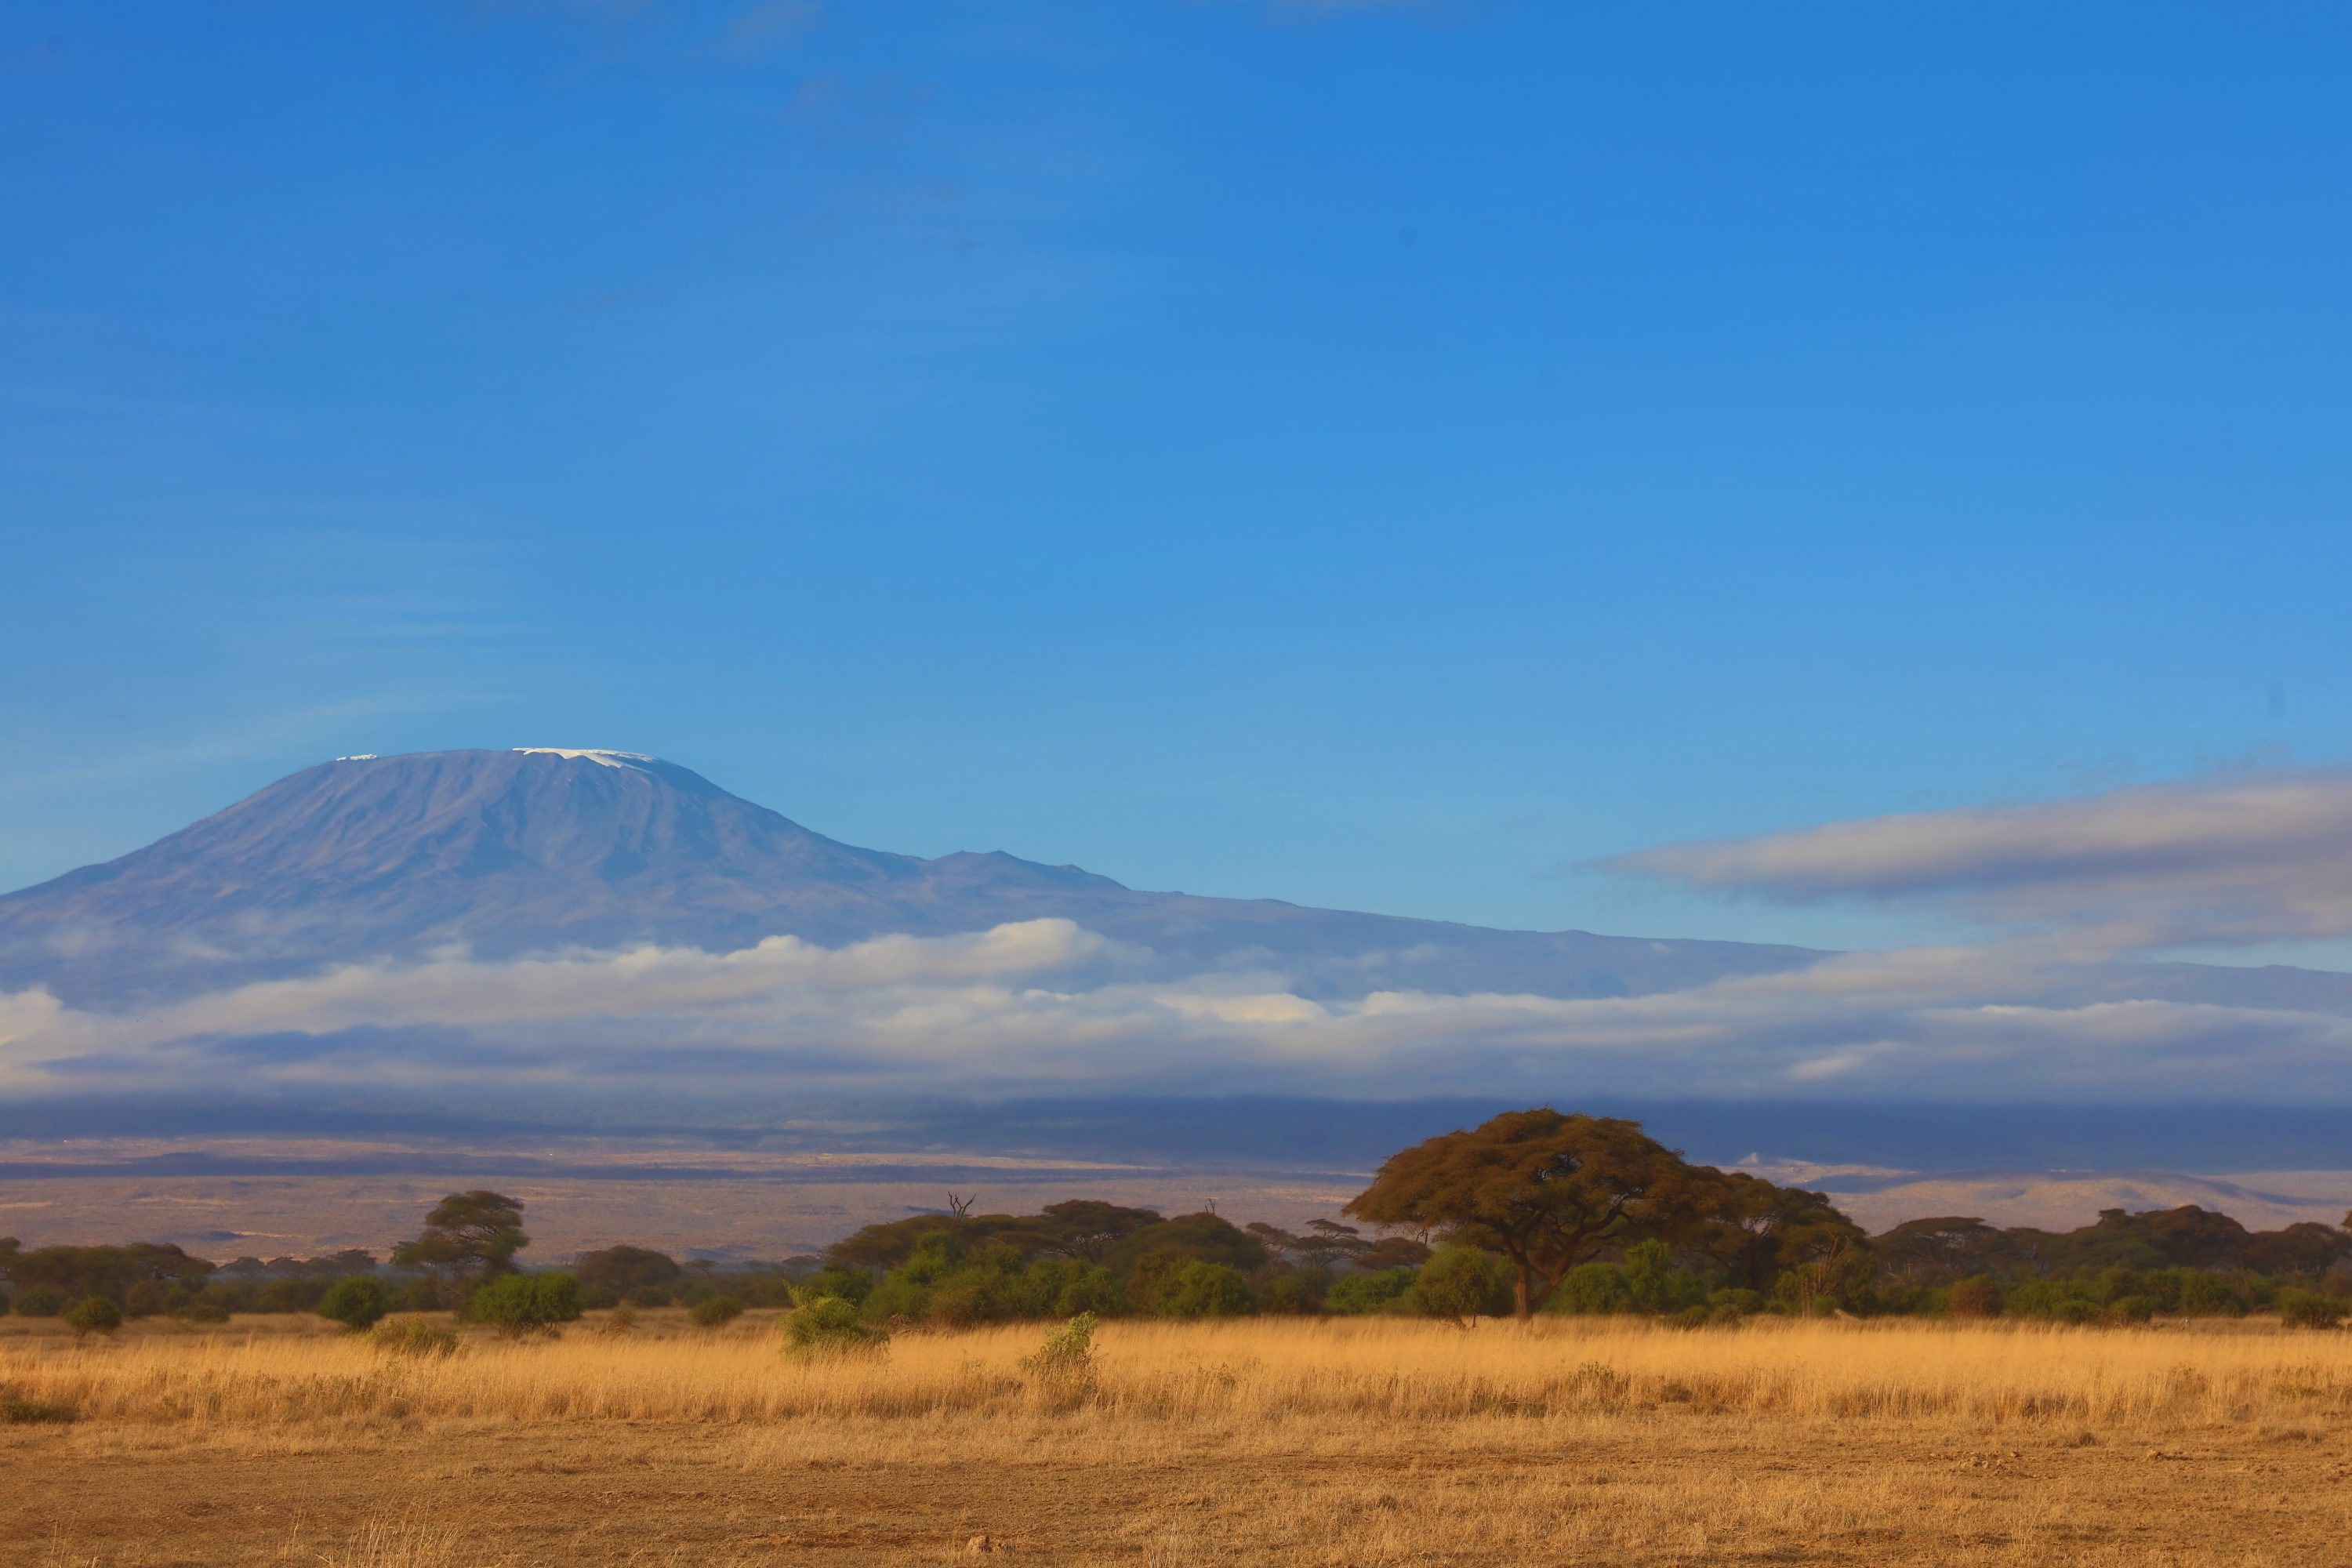 Scenic View Of Kilimanjaro In Kenya